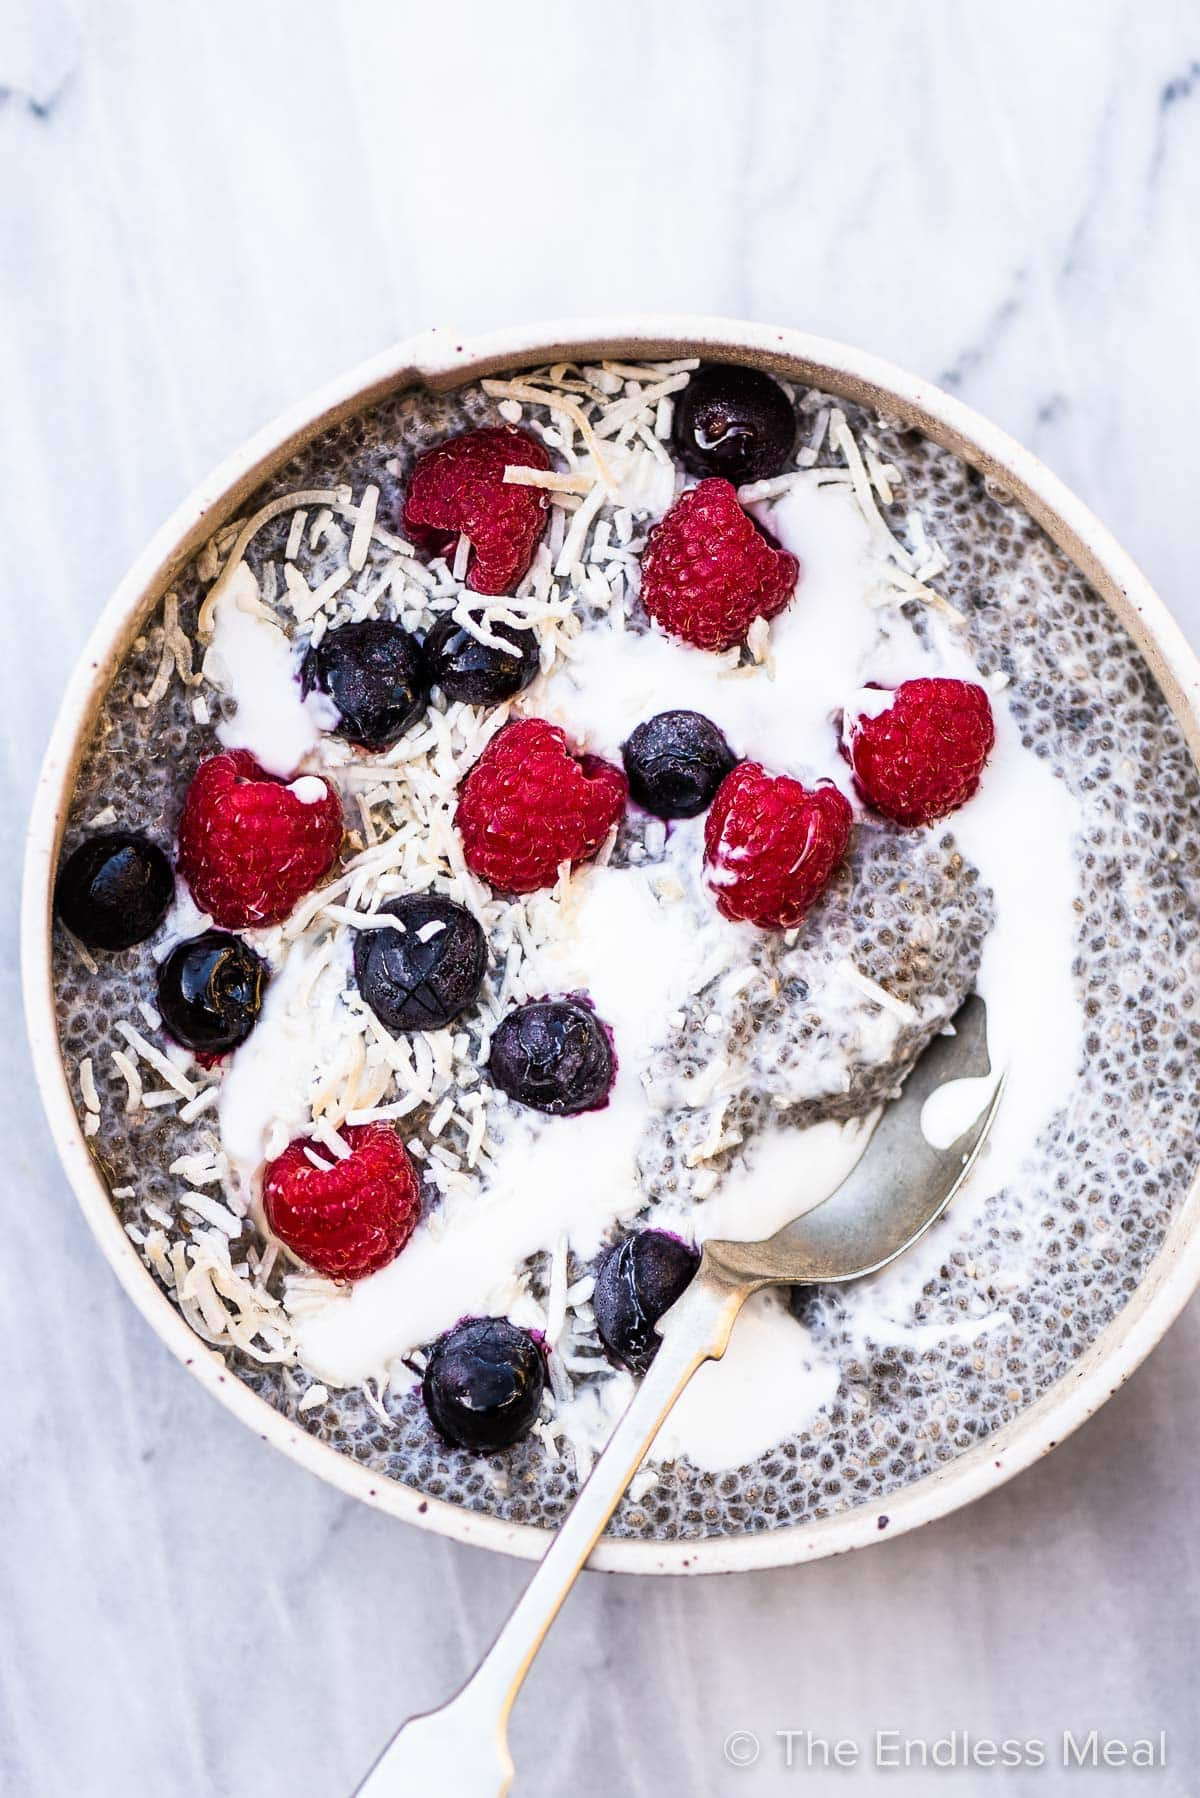 Chia pudding in a bowl on a marble background with berries on top.